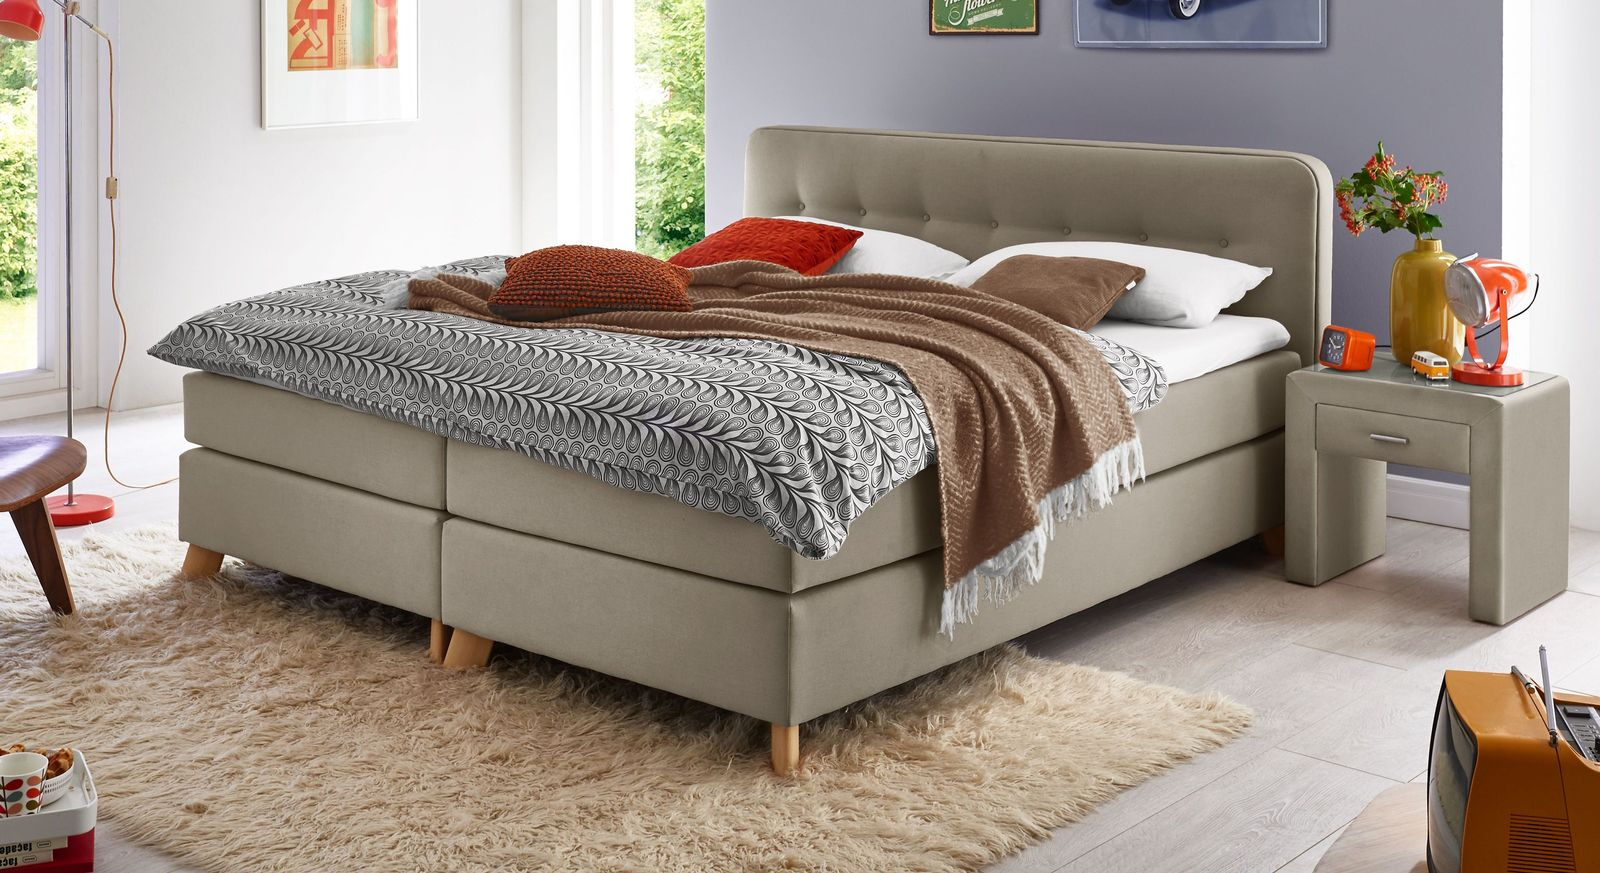 Taupefarbenes Boxspringbett Summerford in modernem Design